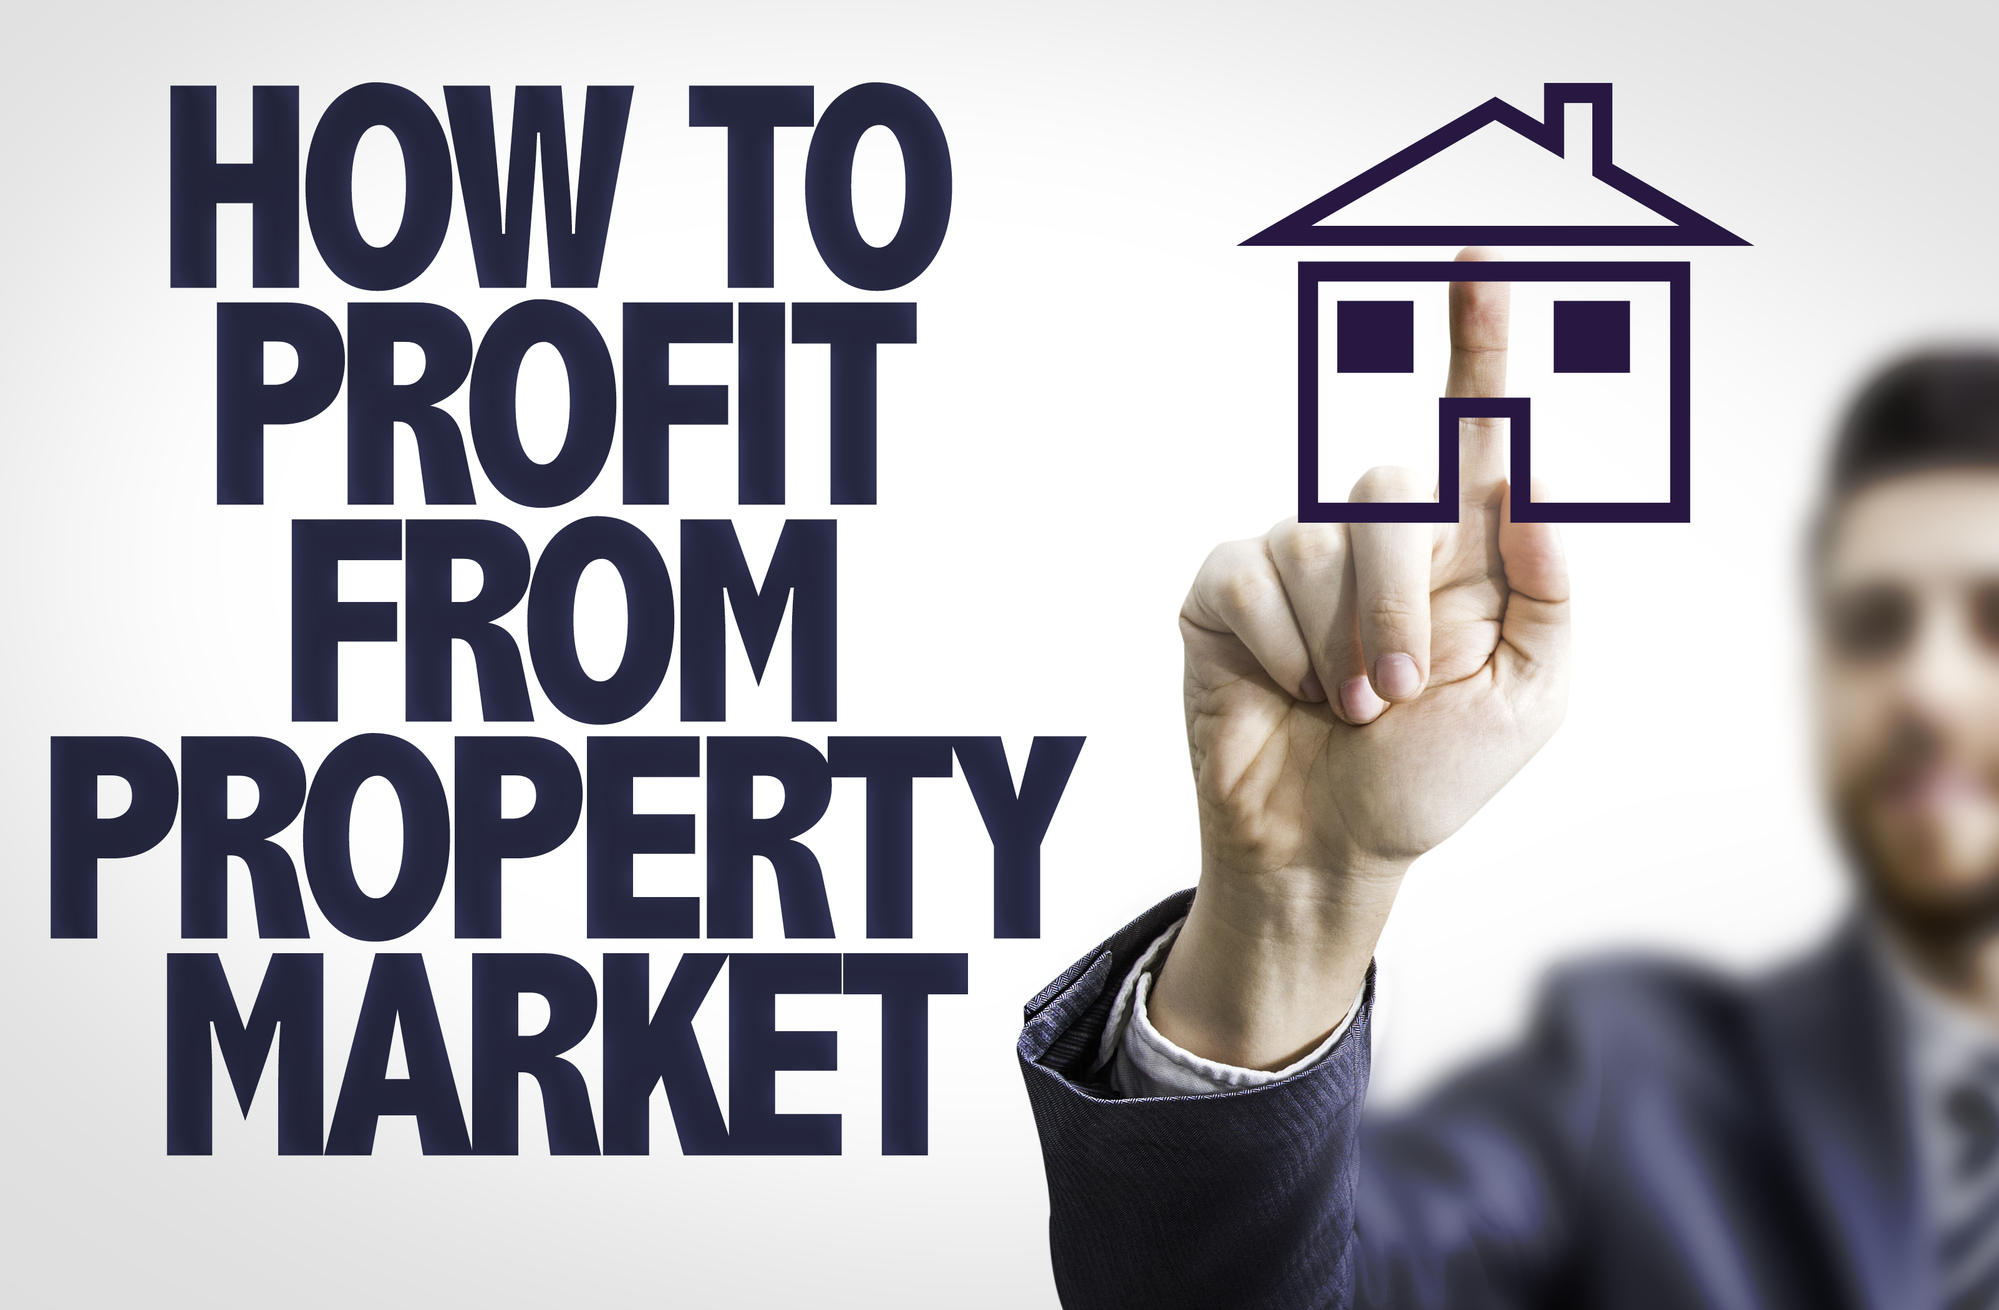 How to Profit From Property Market